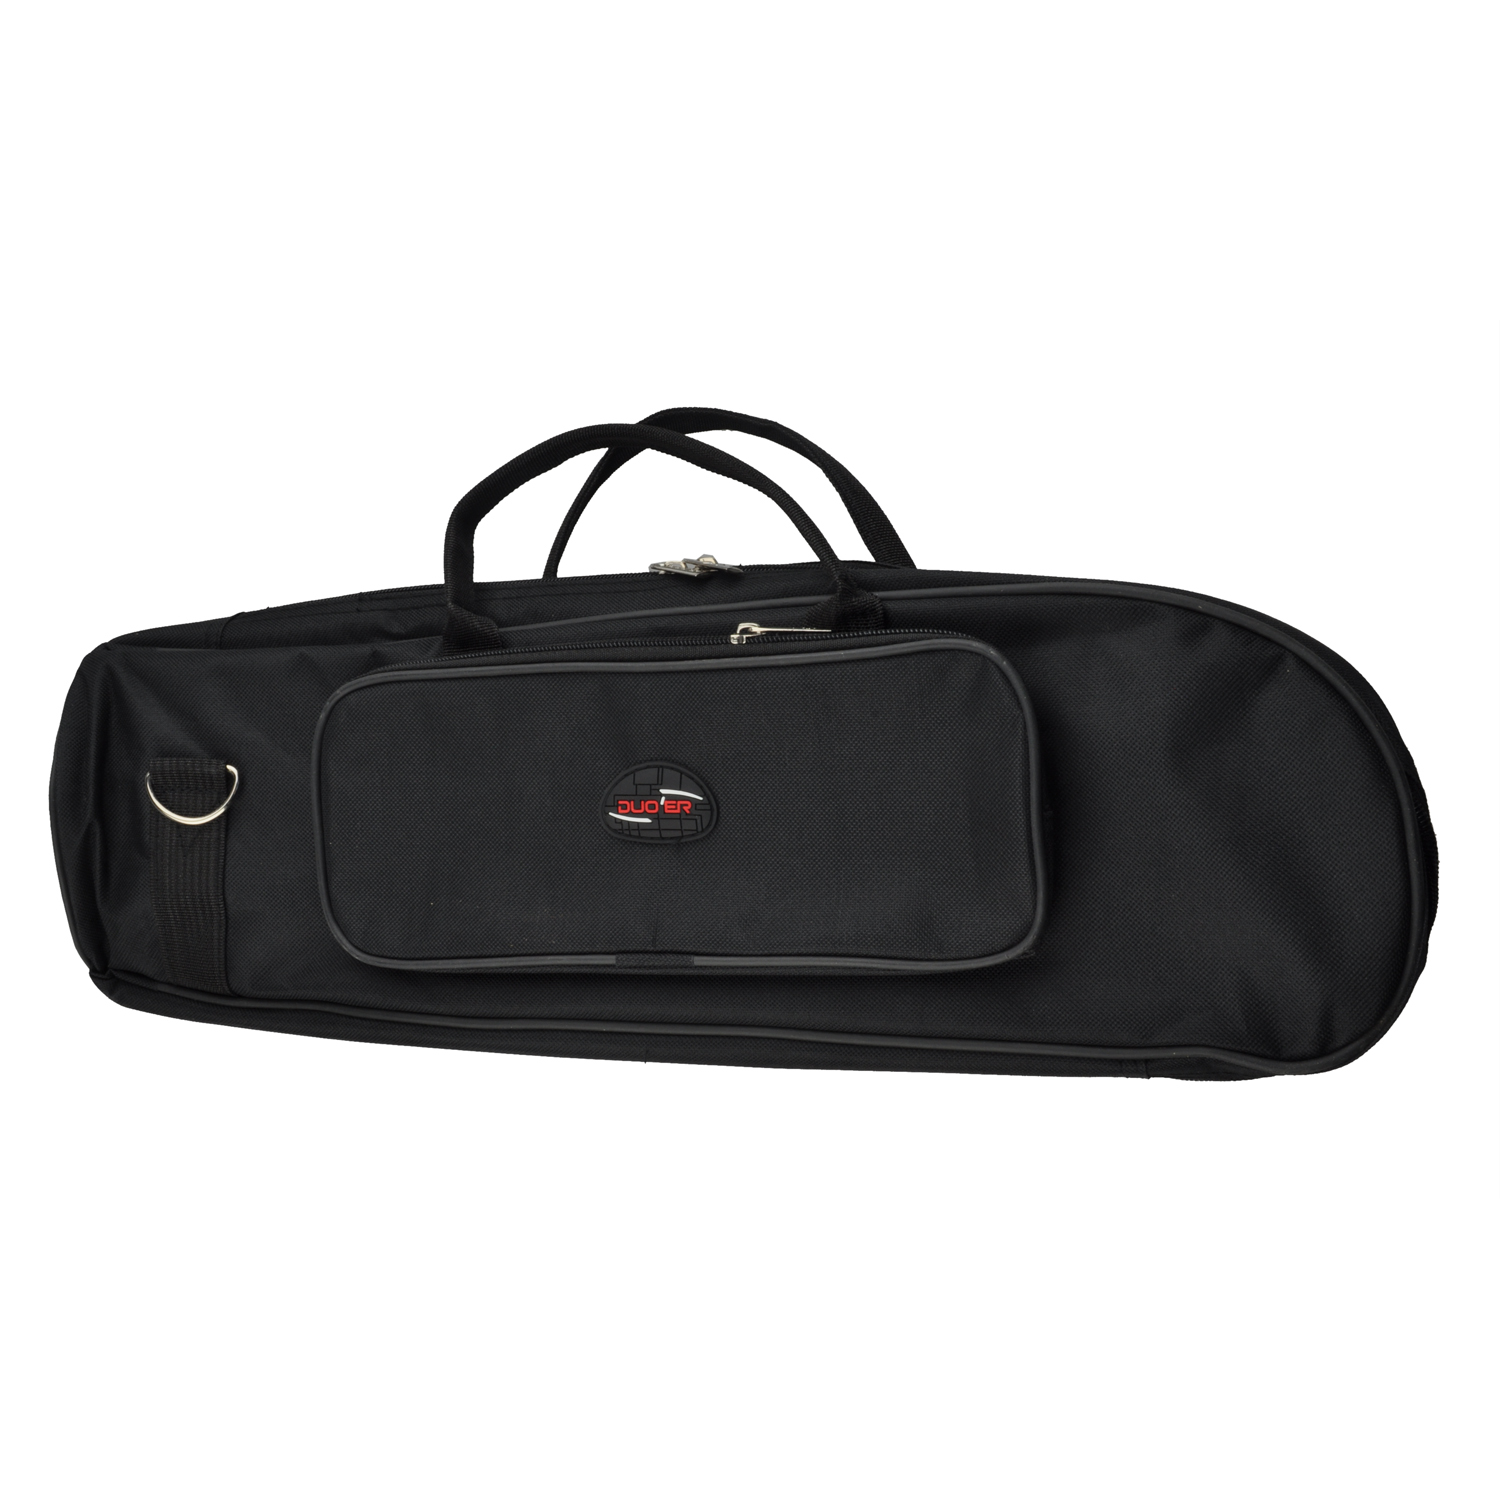 New Trumpet Soft Case Nylon Gig Bag Black